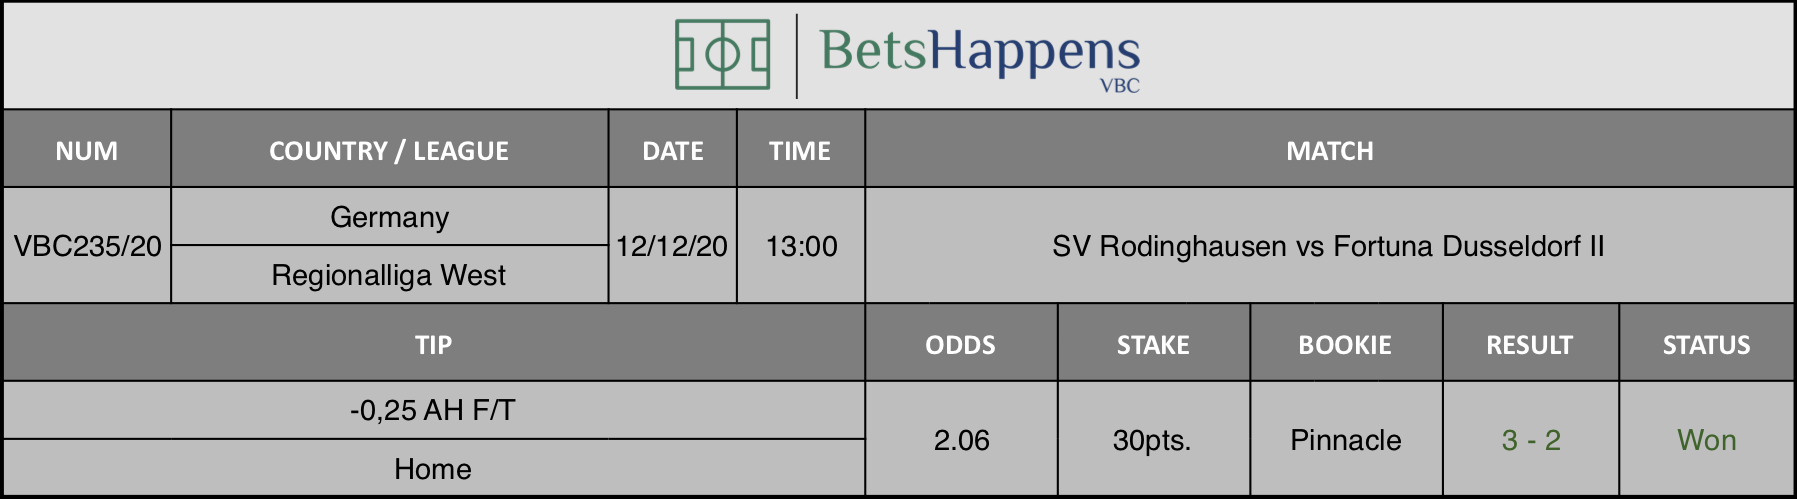 Results of our tip for the SV Rodinghausen vs Fortuna Dusseldorf II match where -0,25 AH F/T Home is recommended.